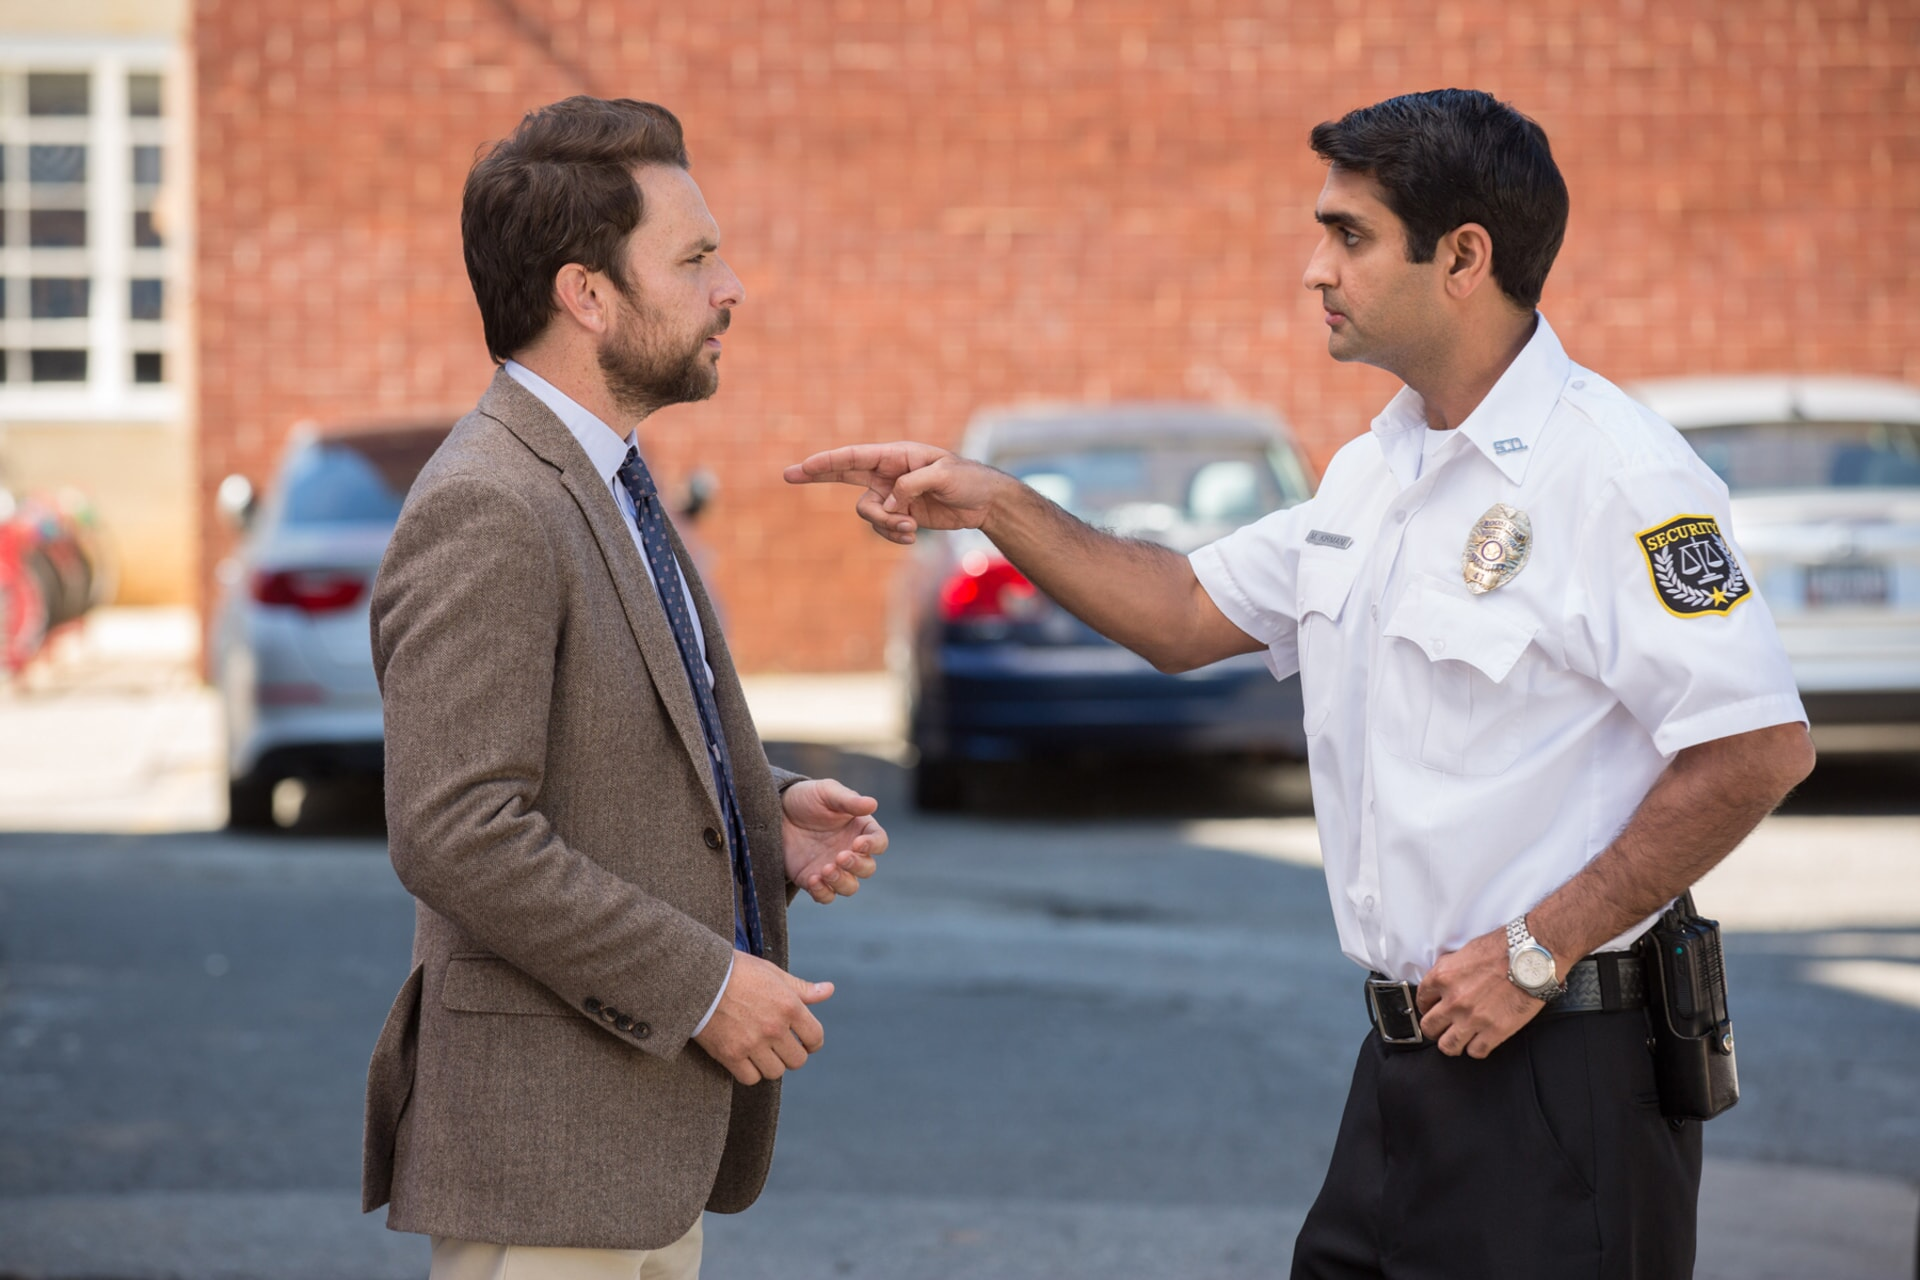 """CHARLIE DAY as Andy Campbell and KUMAIL NANJIANI as Mehar in the New Line Cinema and Village Roadshow Pictures comedy """"FIST FIGHT,"""" a Warner Bros. Pictures release."""